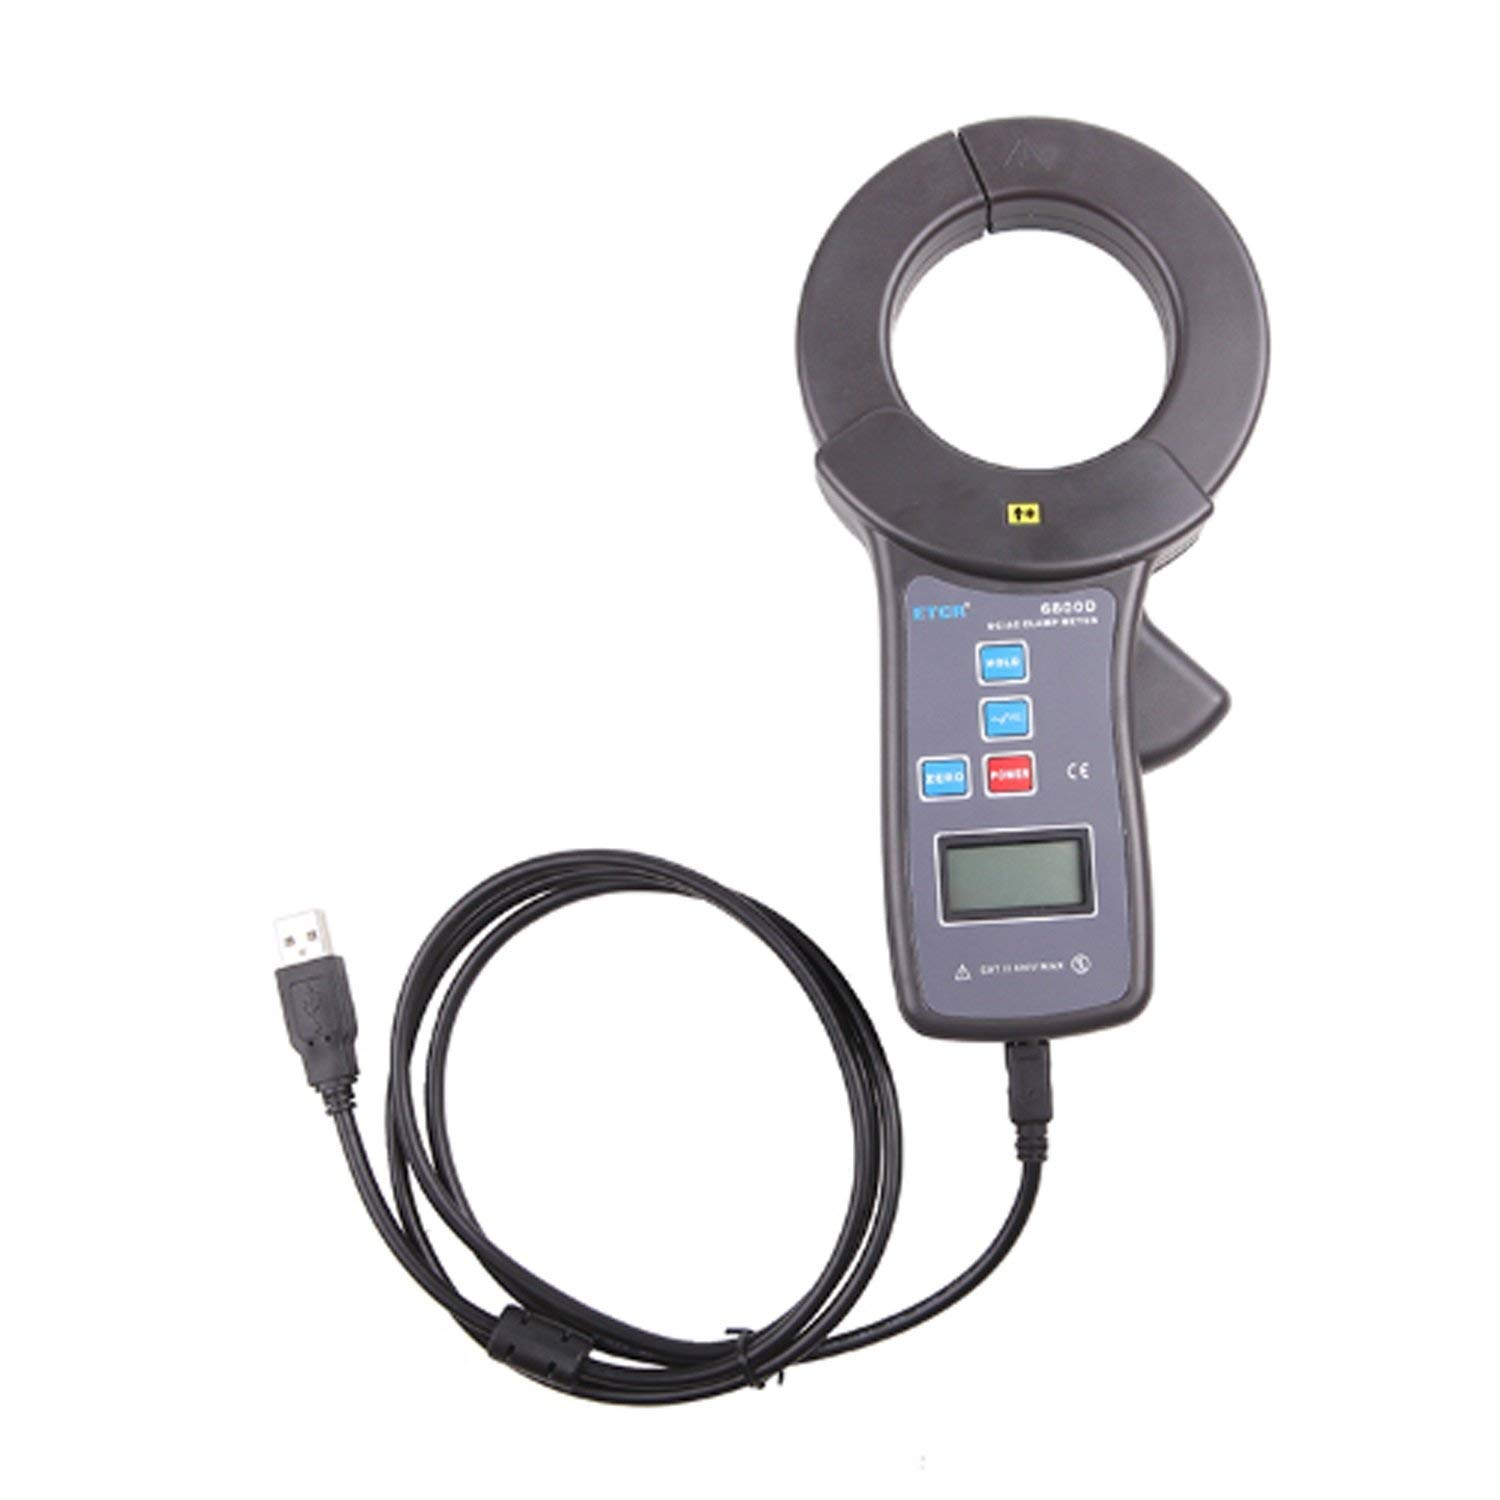 Earth Resistance Tester Meter USB interface digital clamp ammeter with ETCR6800D 0~2000A AC DC Leakage Current Clamp Meter ETCR6800D